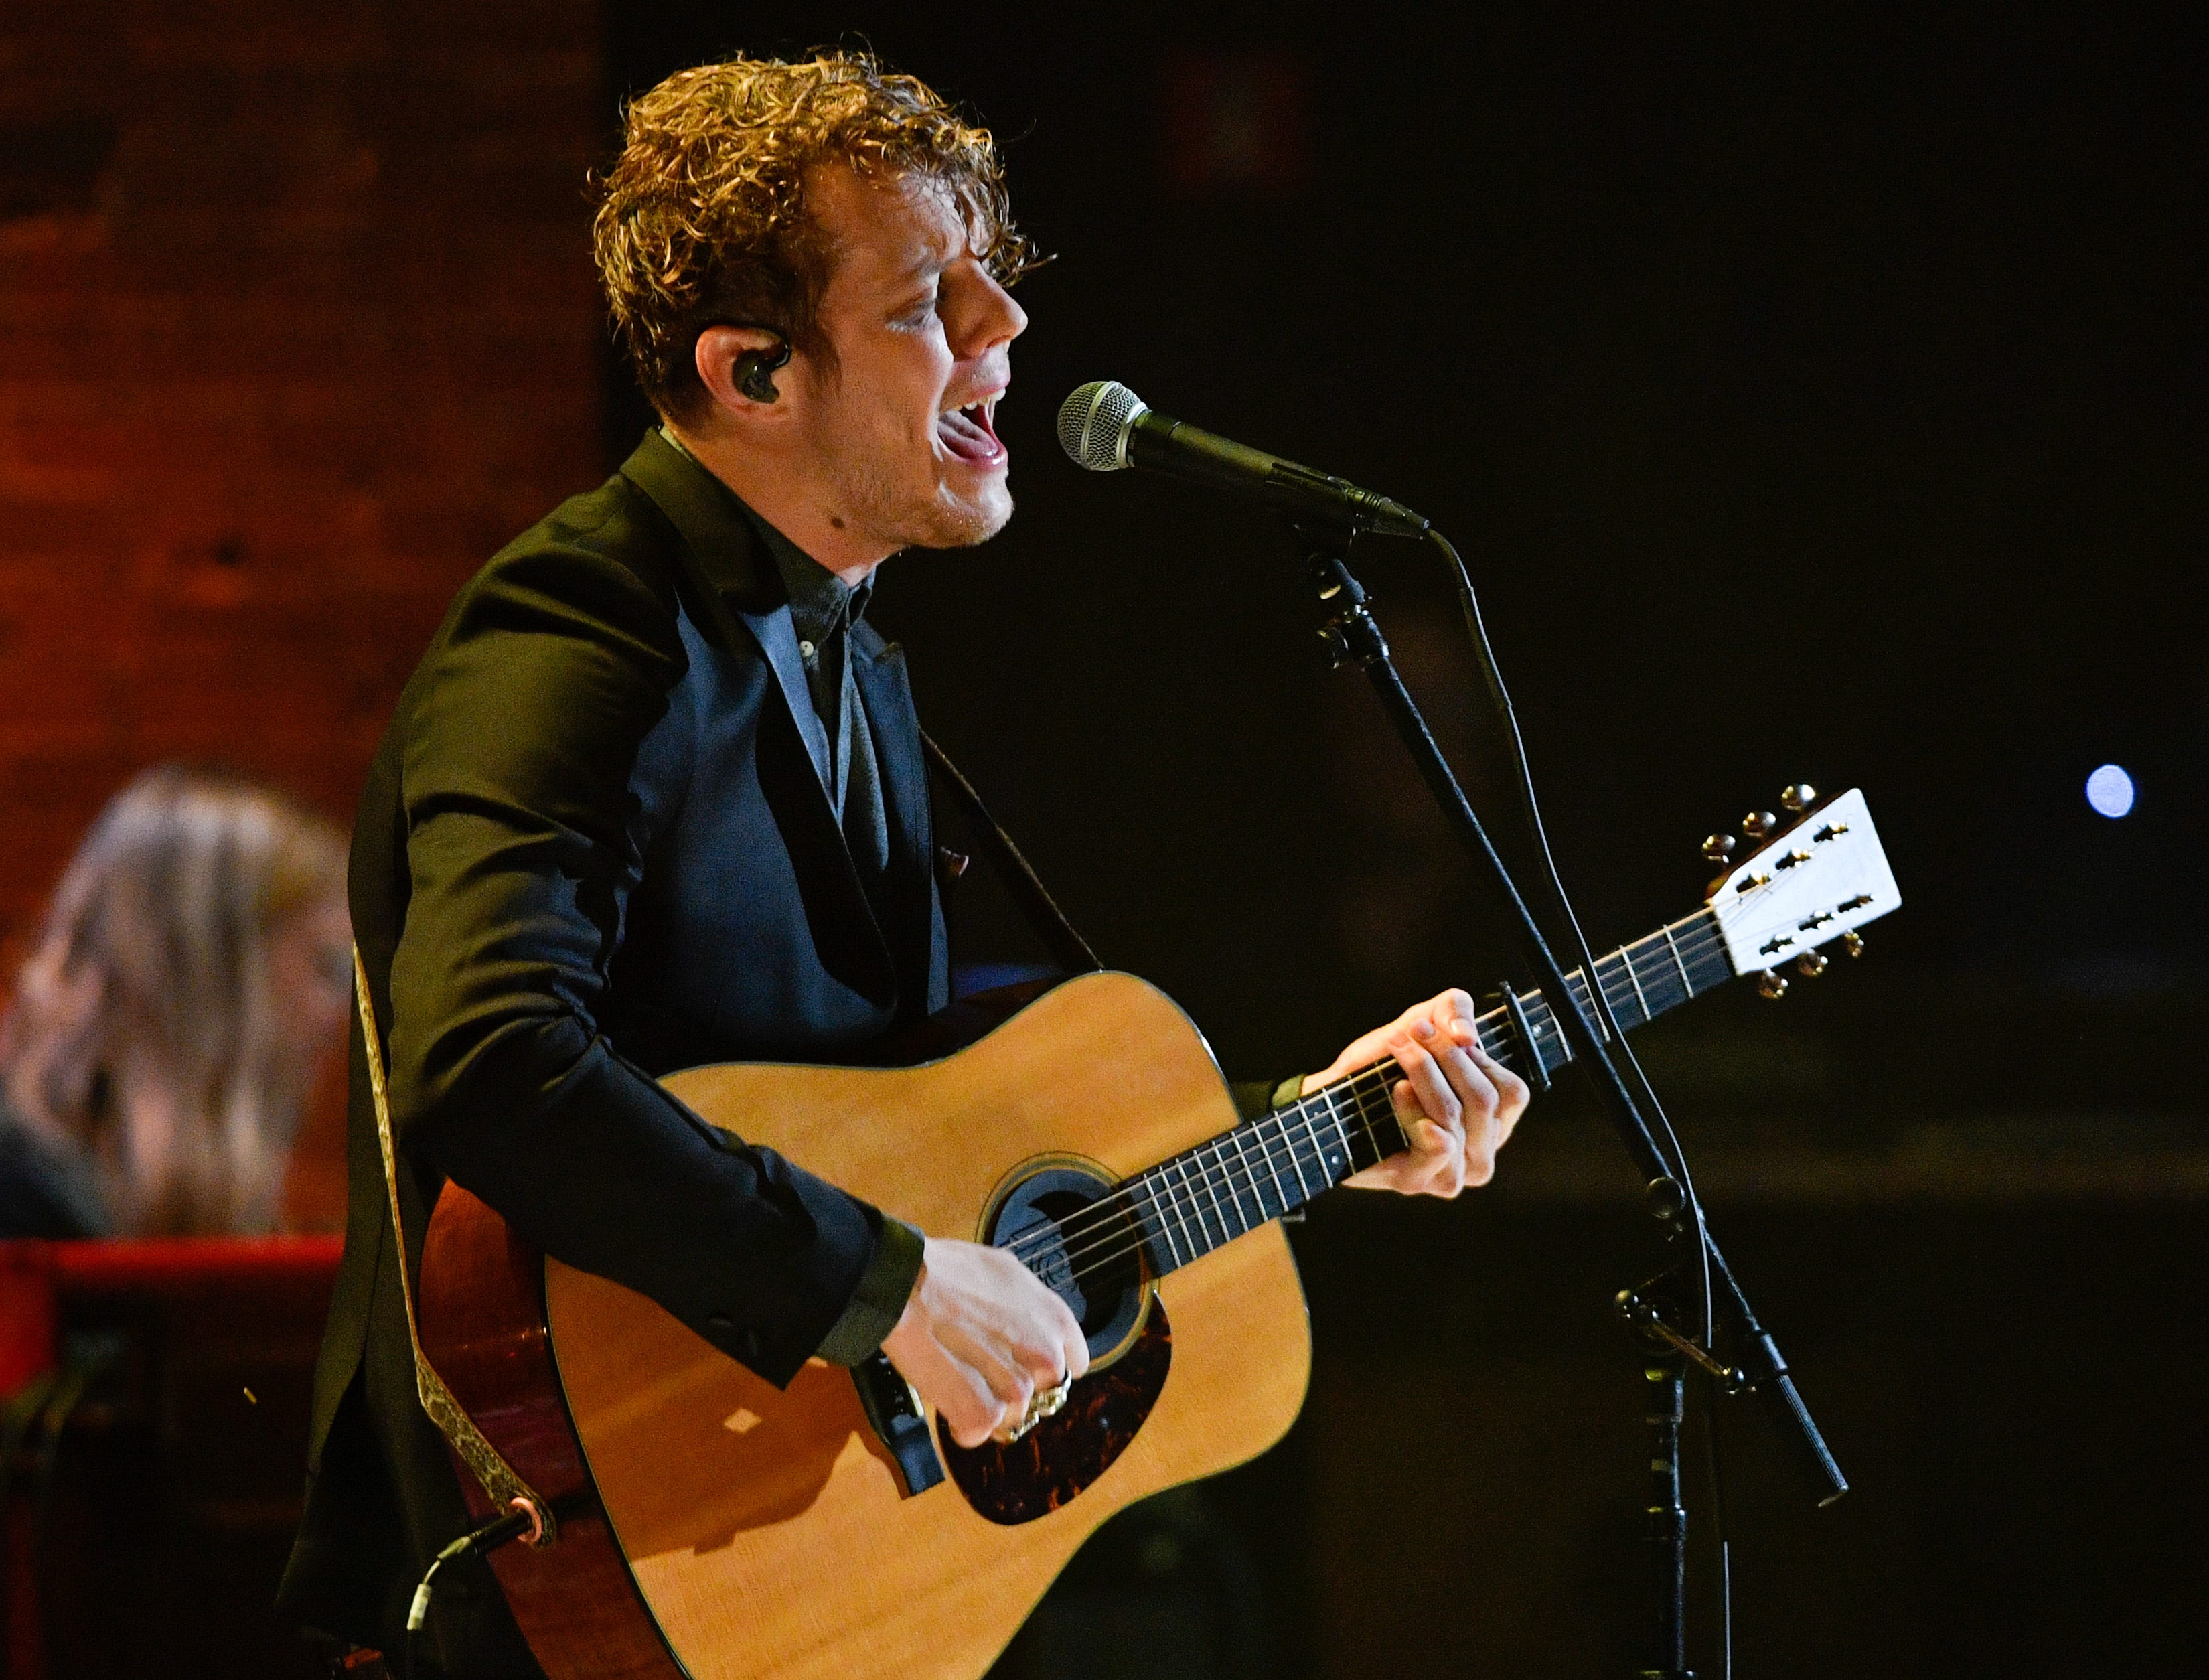 Anderson East performs during the 2018 Americana Honors and Awards show at the Ryman Auditorium in Nashville, Tenn., Wednesday, Sept. 12, 2018.